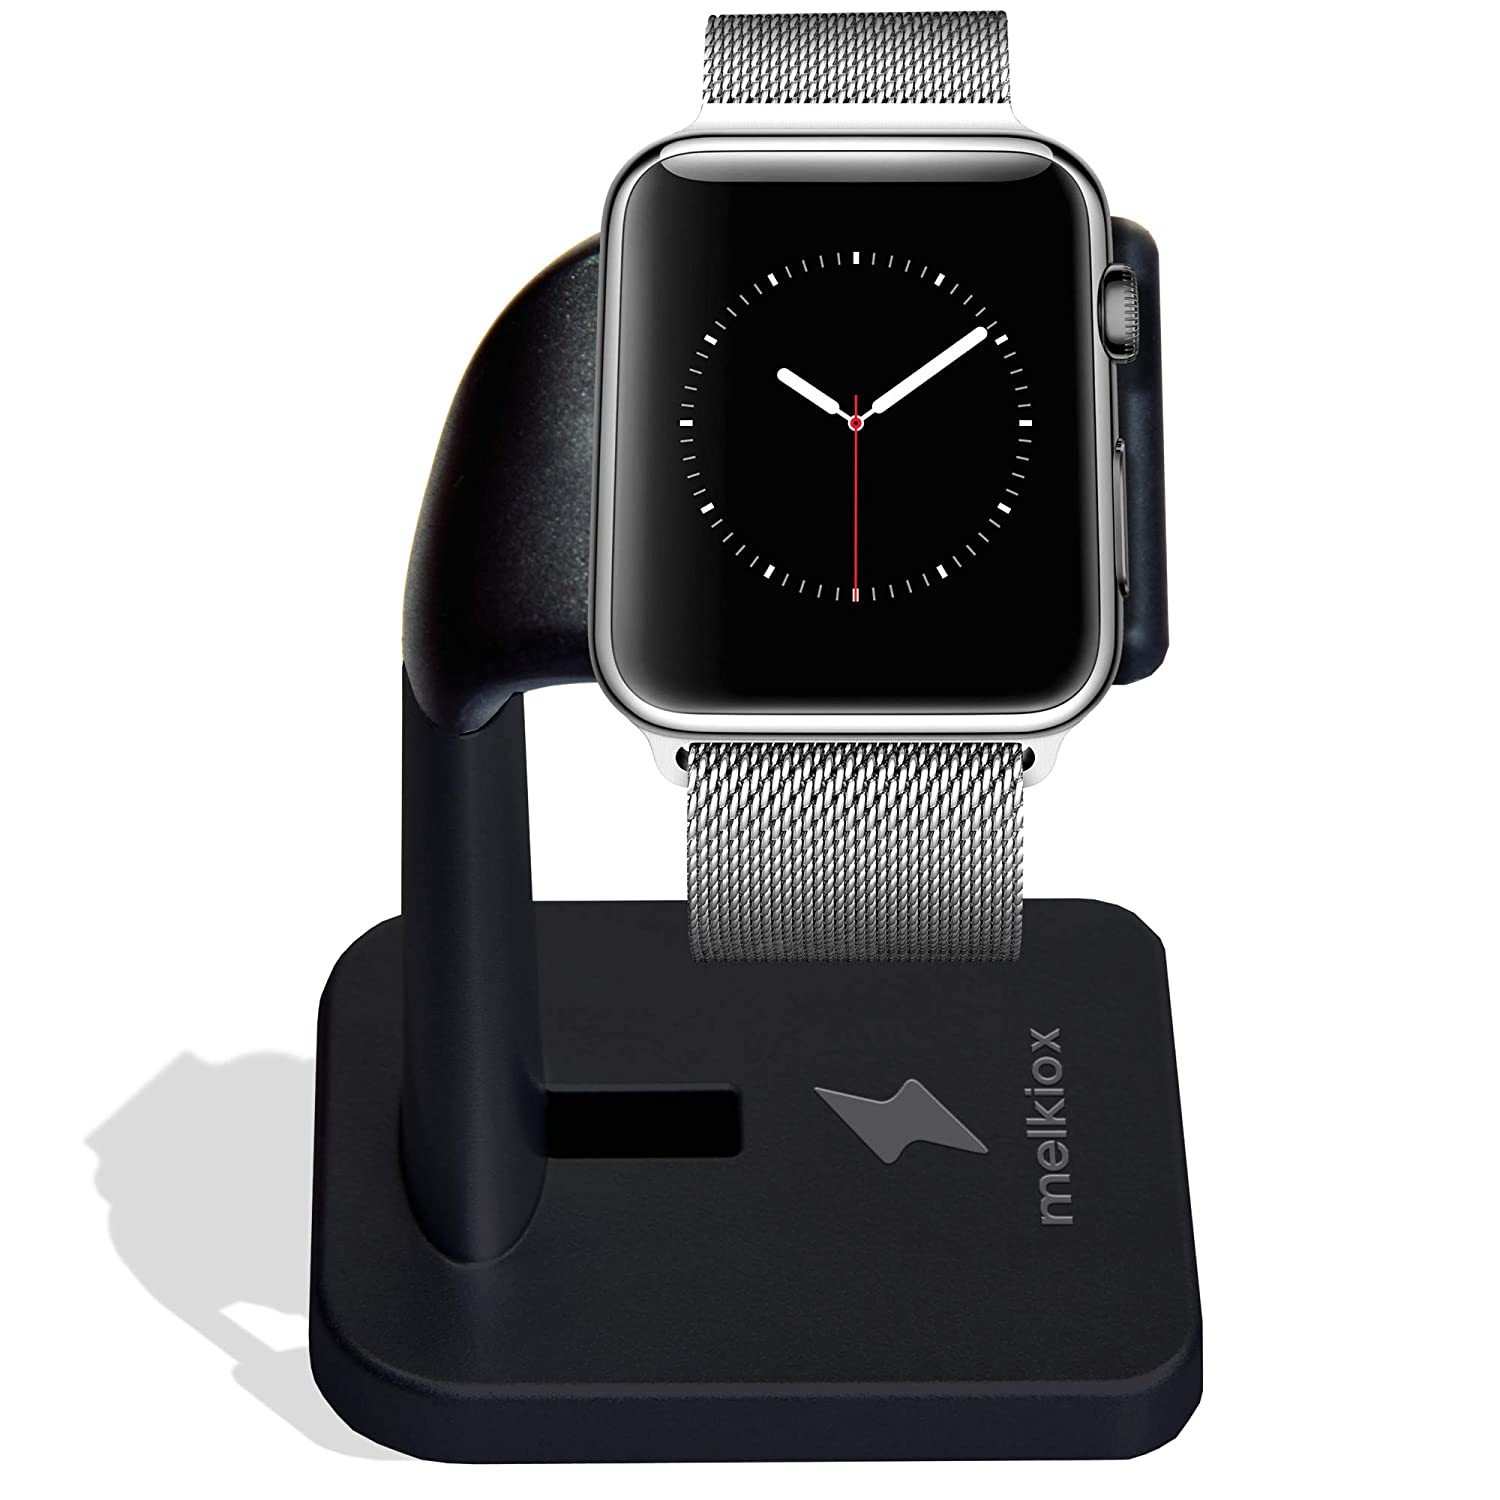 Melkiox Apple Watch Stand- Compatible with iWatch Nightstand Mode Charging, Smartwatch Holder for Series 4 / Series 3 / Series 2 / Series 1 44mm, ...